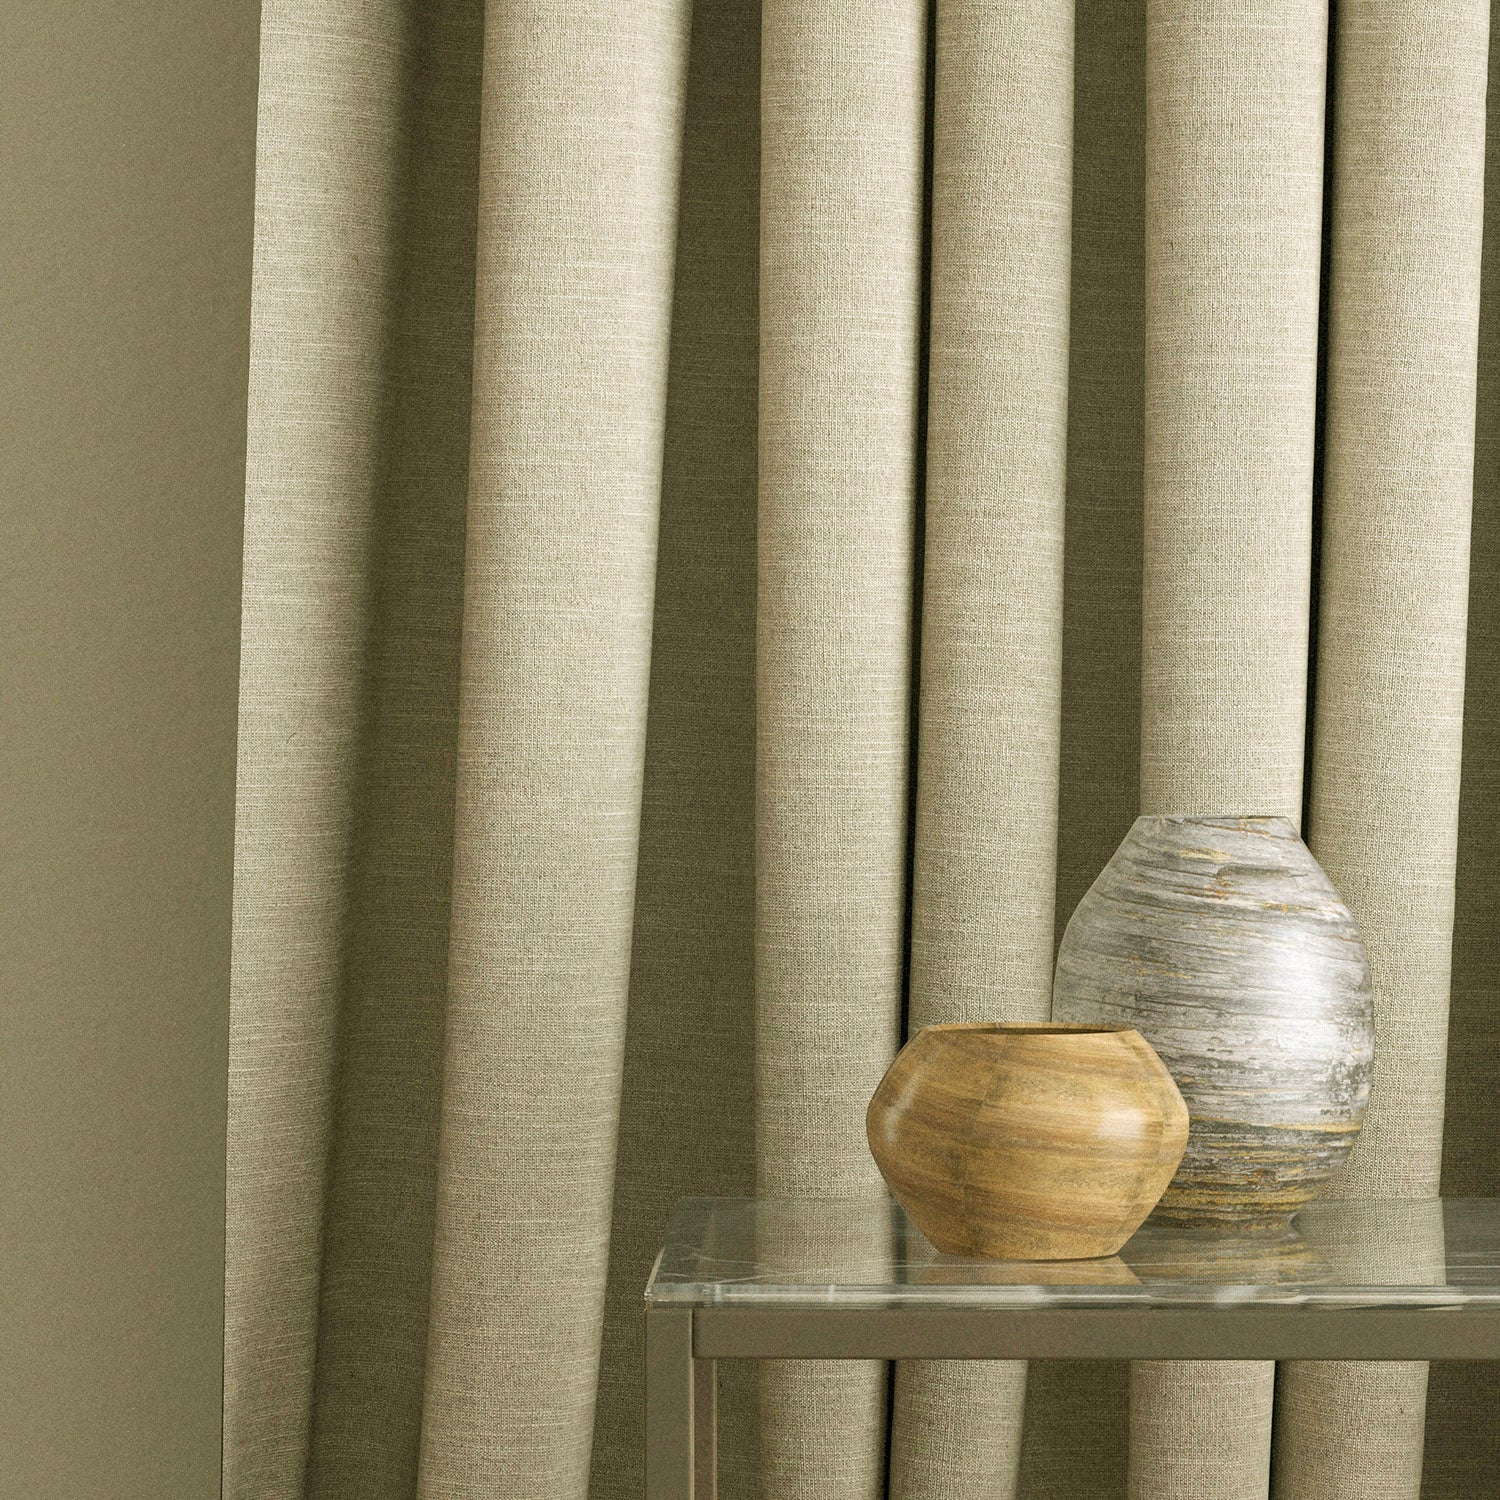 Curtains in a linen coloured plain fabric